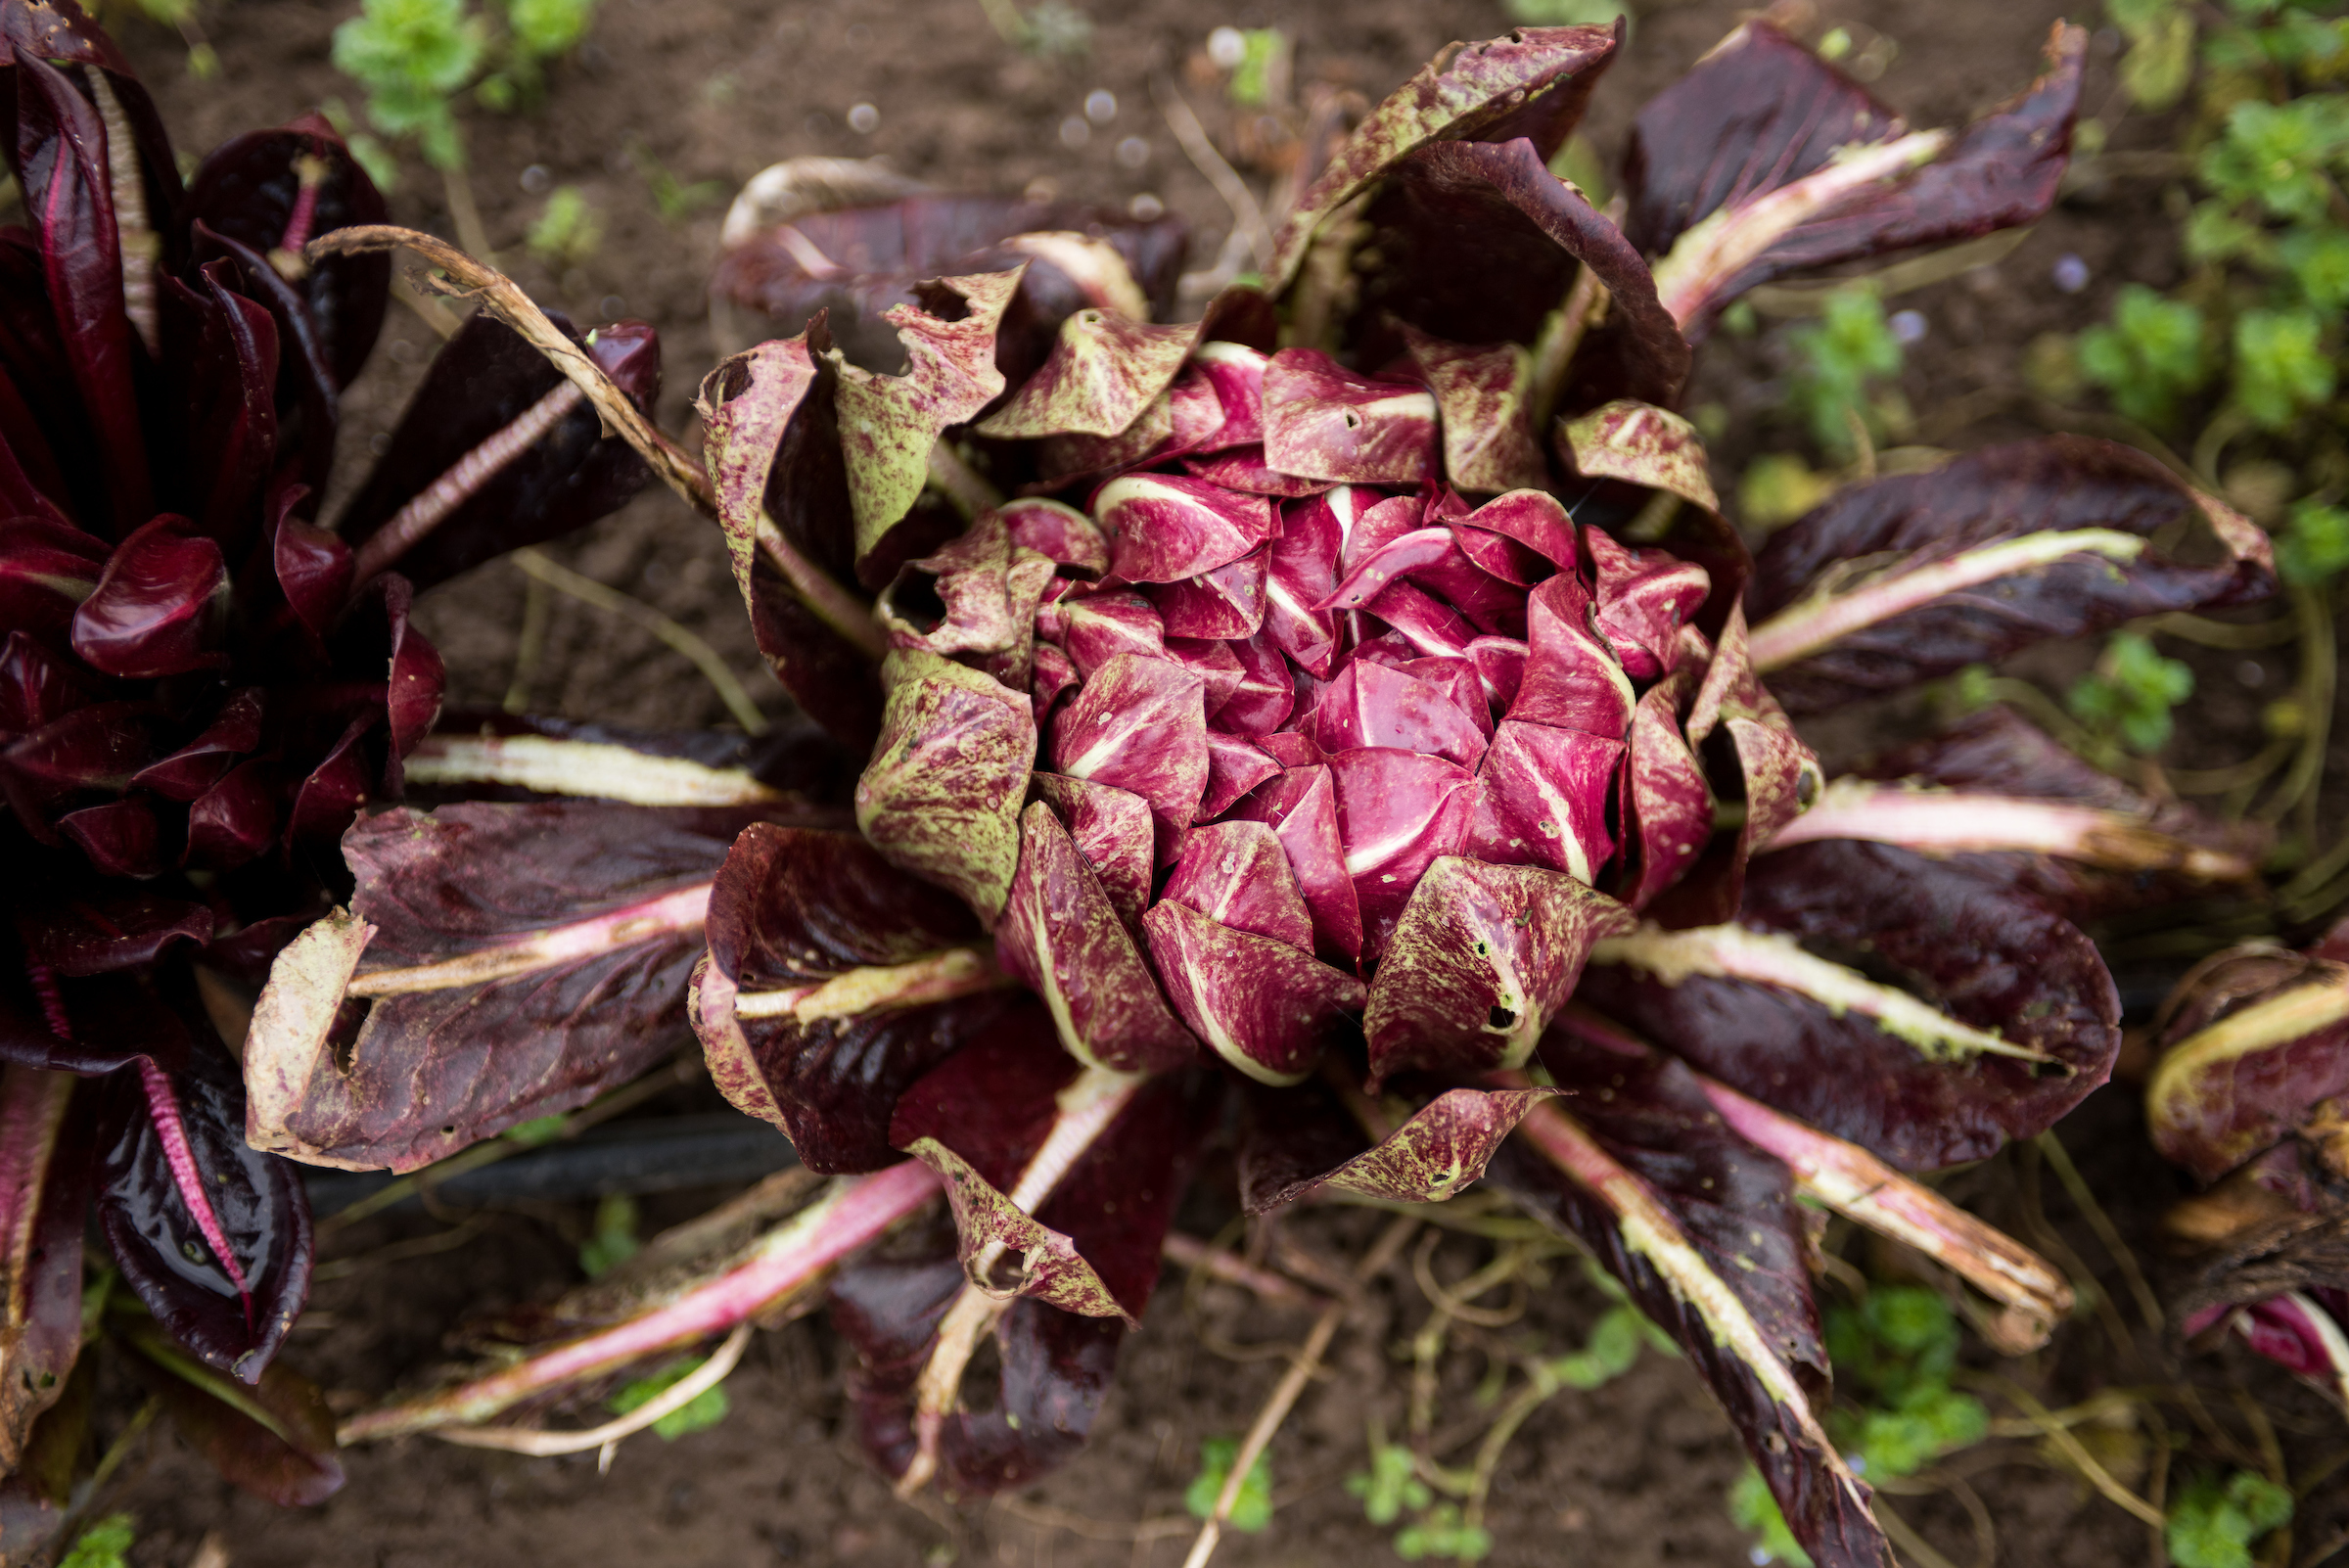 """Beautiful """"Arch Cape"""" Treviso-type radicchio developed by Anthony & Carol Boutard at Ayers Creek Farm in Gaston, OR. Photo by Shawn Linehan."""